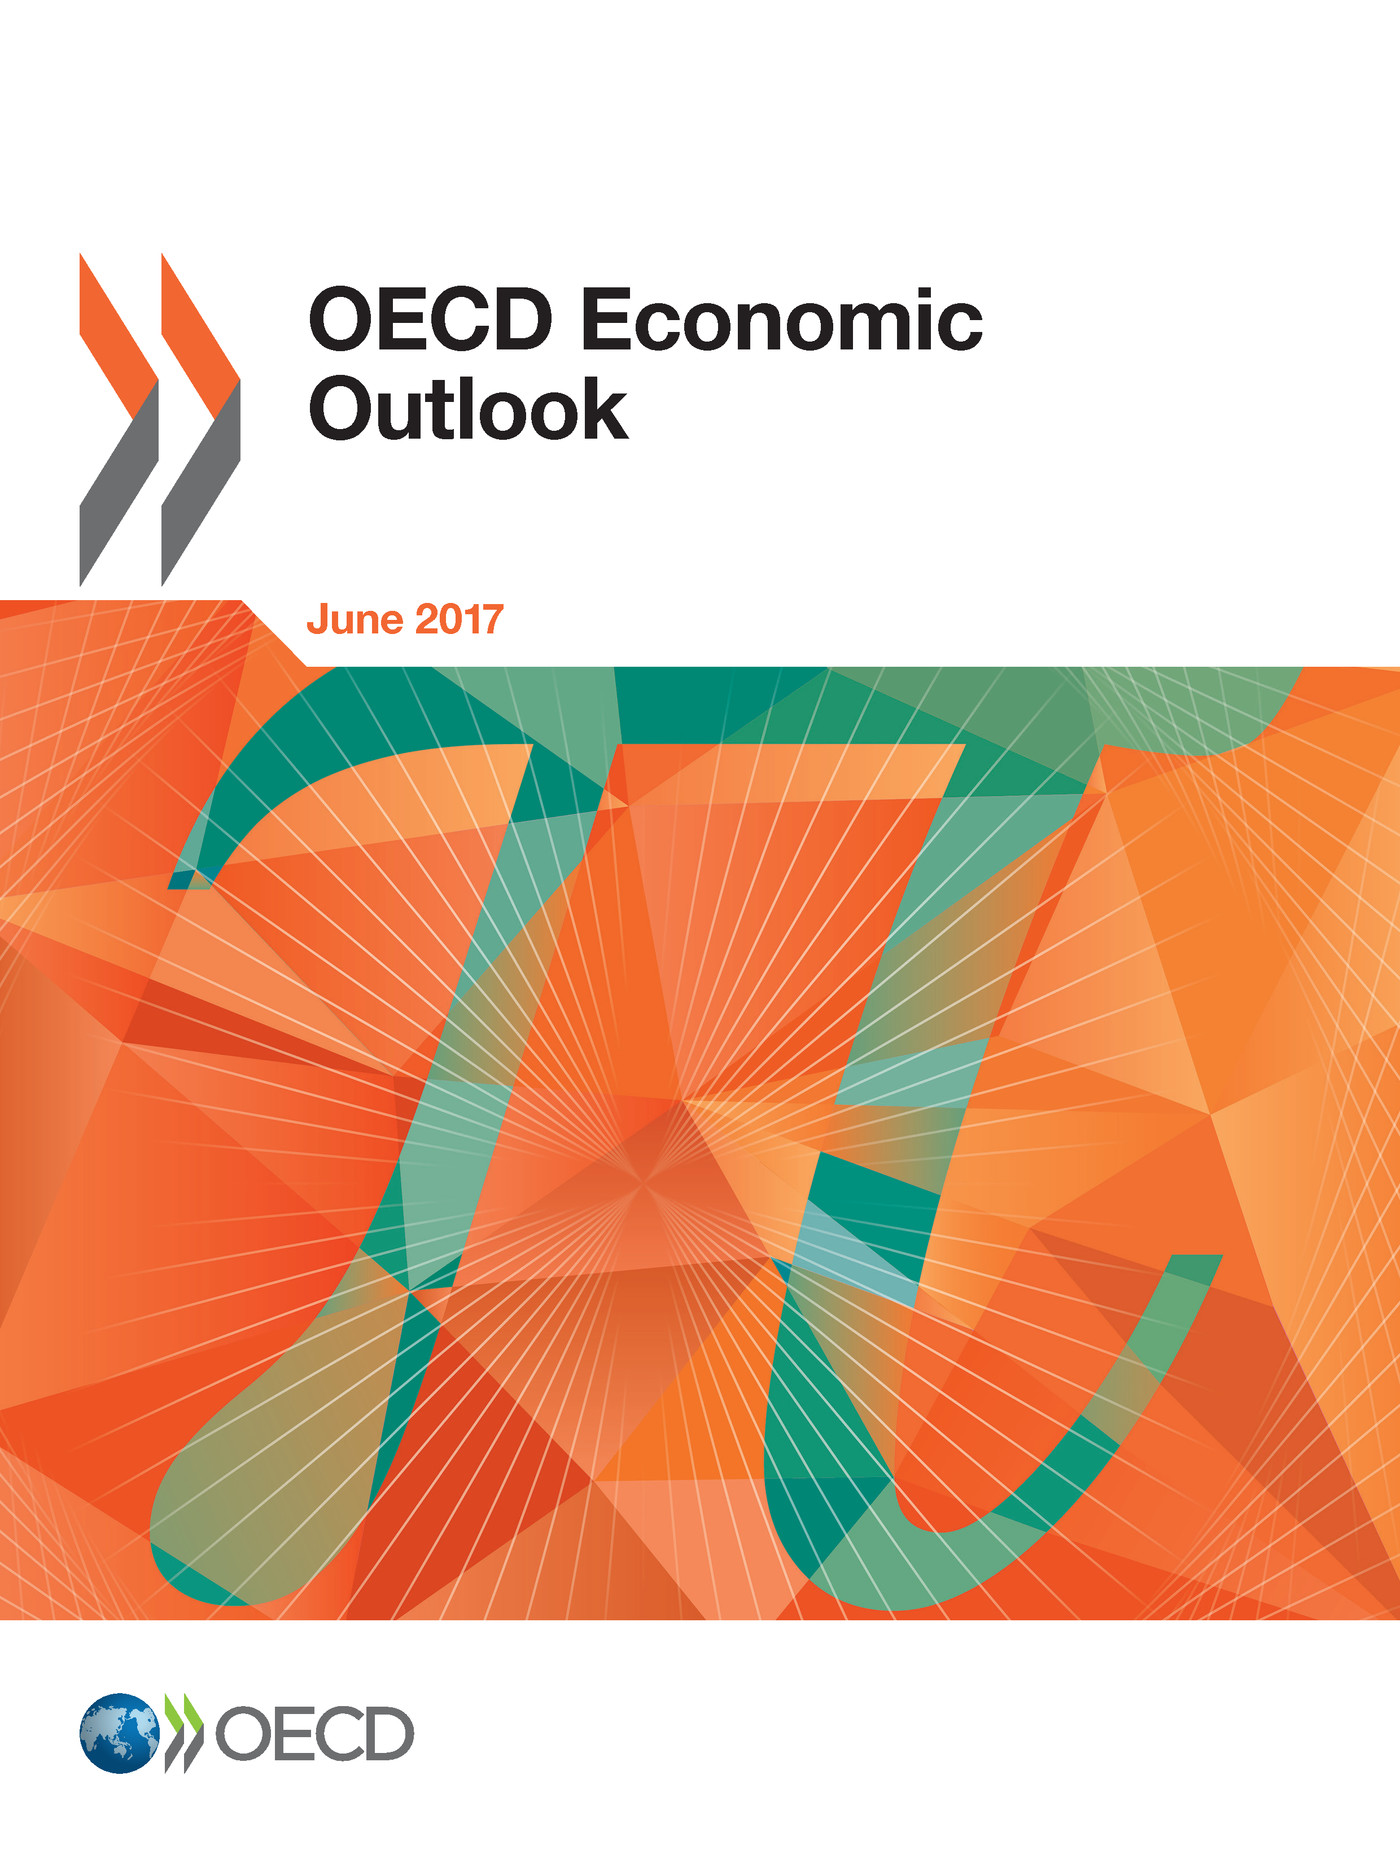 OECD Economic Outlook, Volume 2017 Issue 1